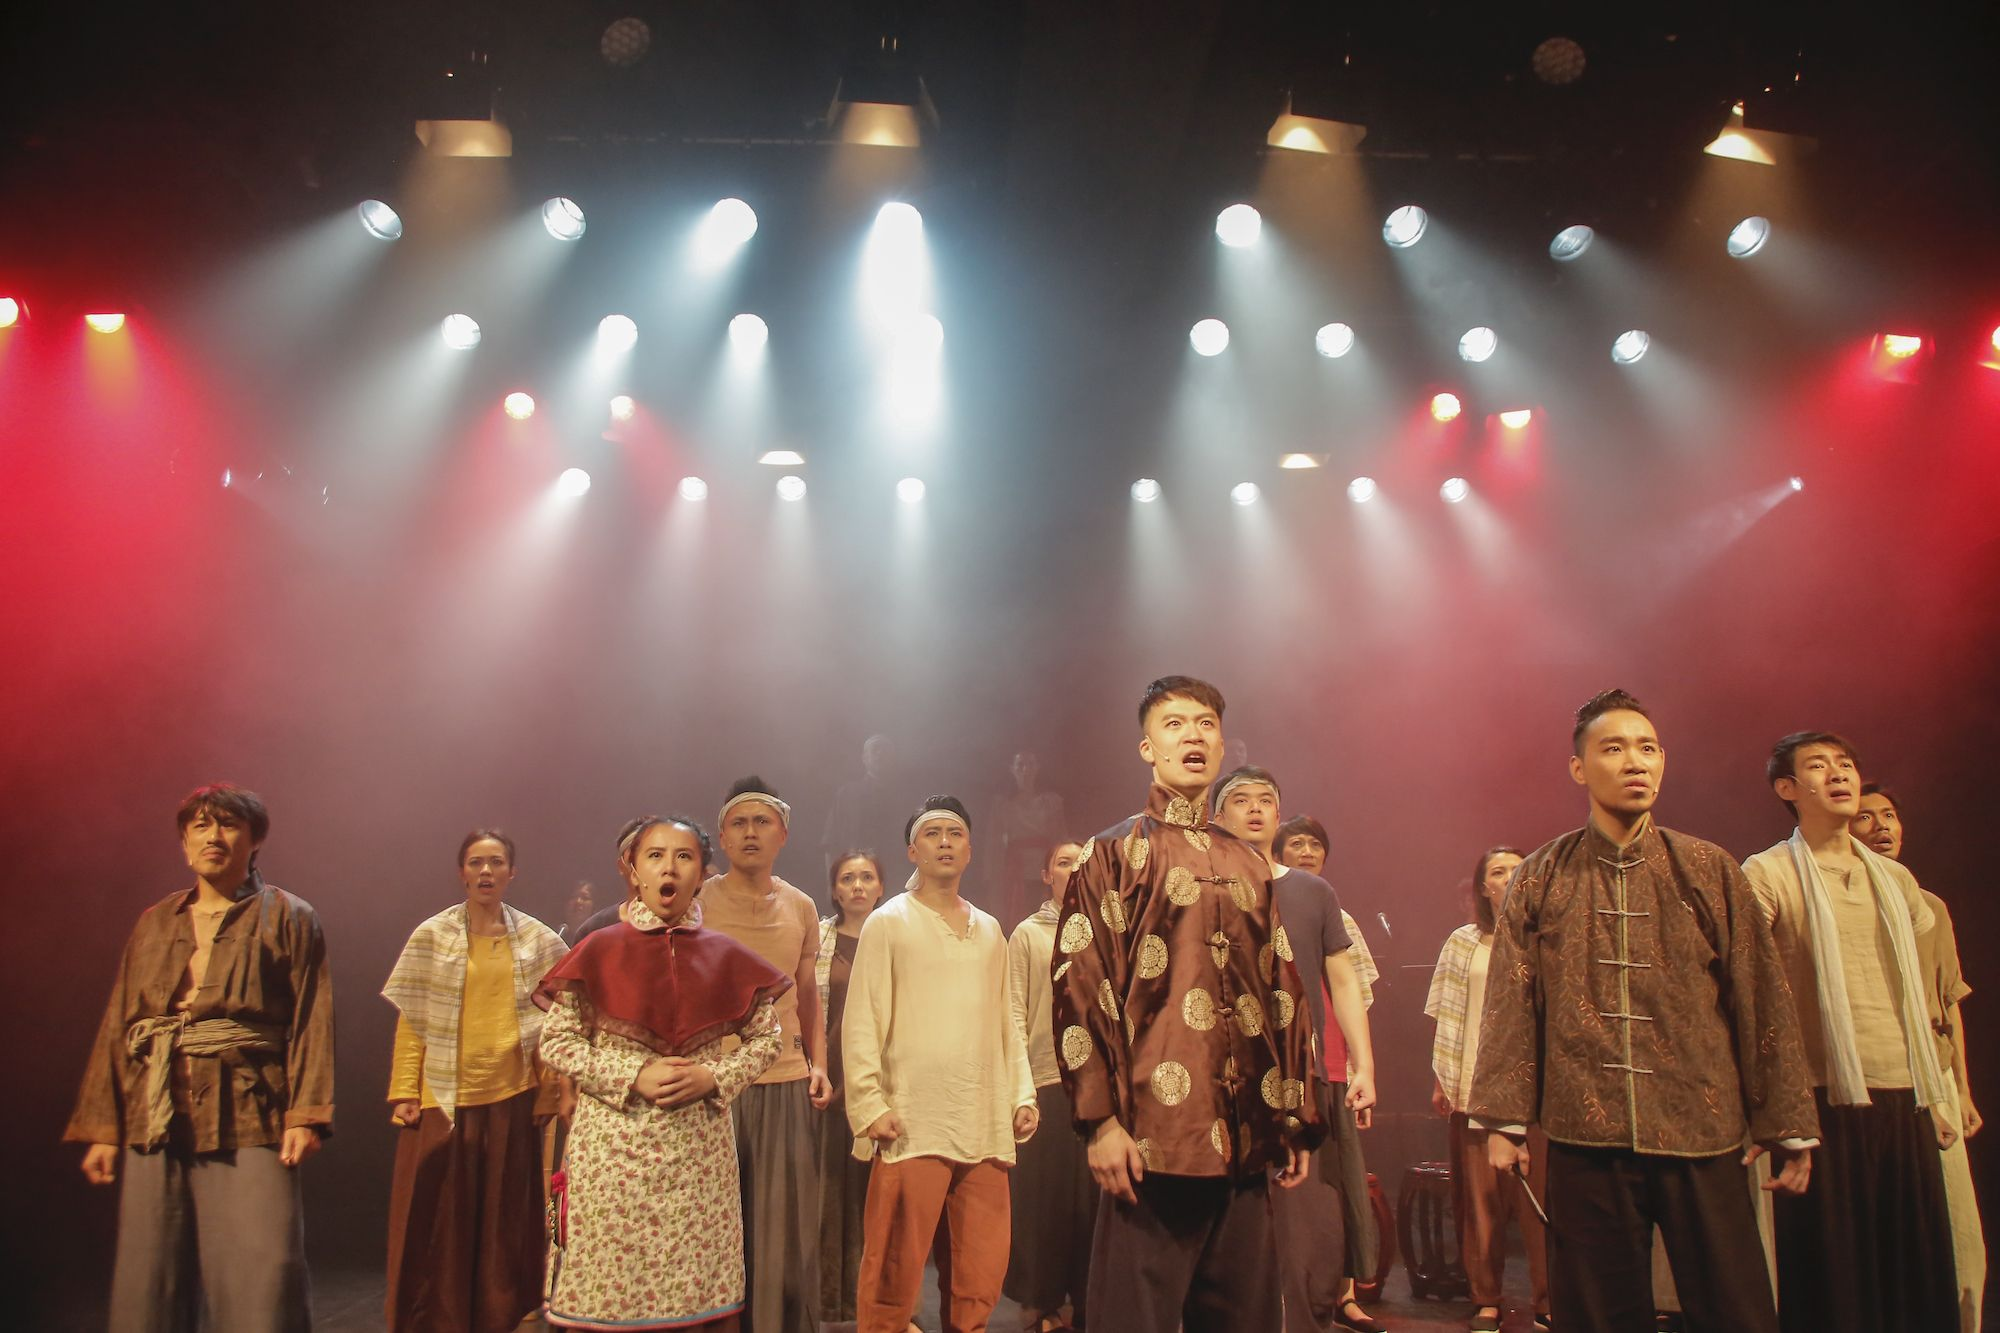 Actors' Family Brings Cantonese Musicals To New Heights With A Brand New Original, A Tale Of The Southern Sky